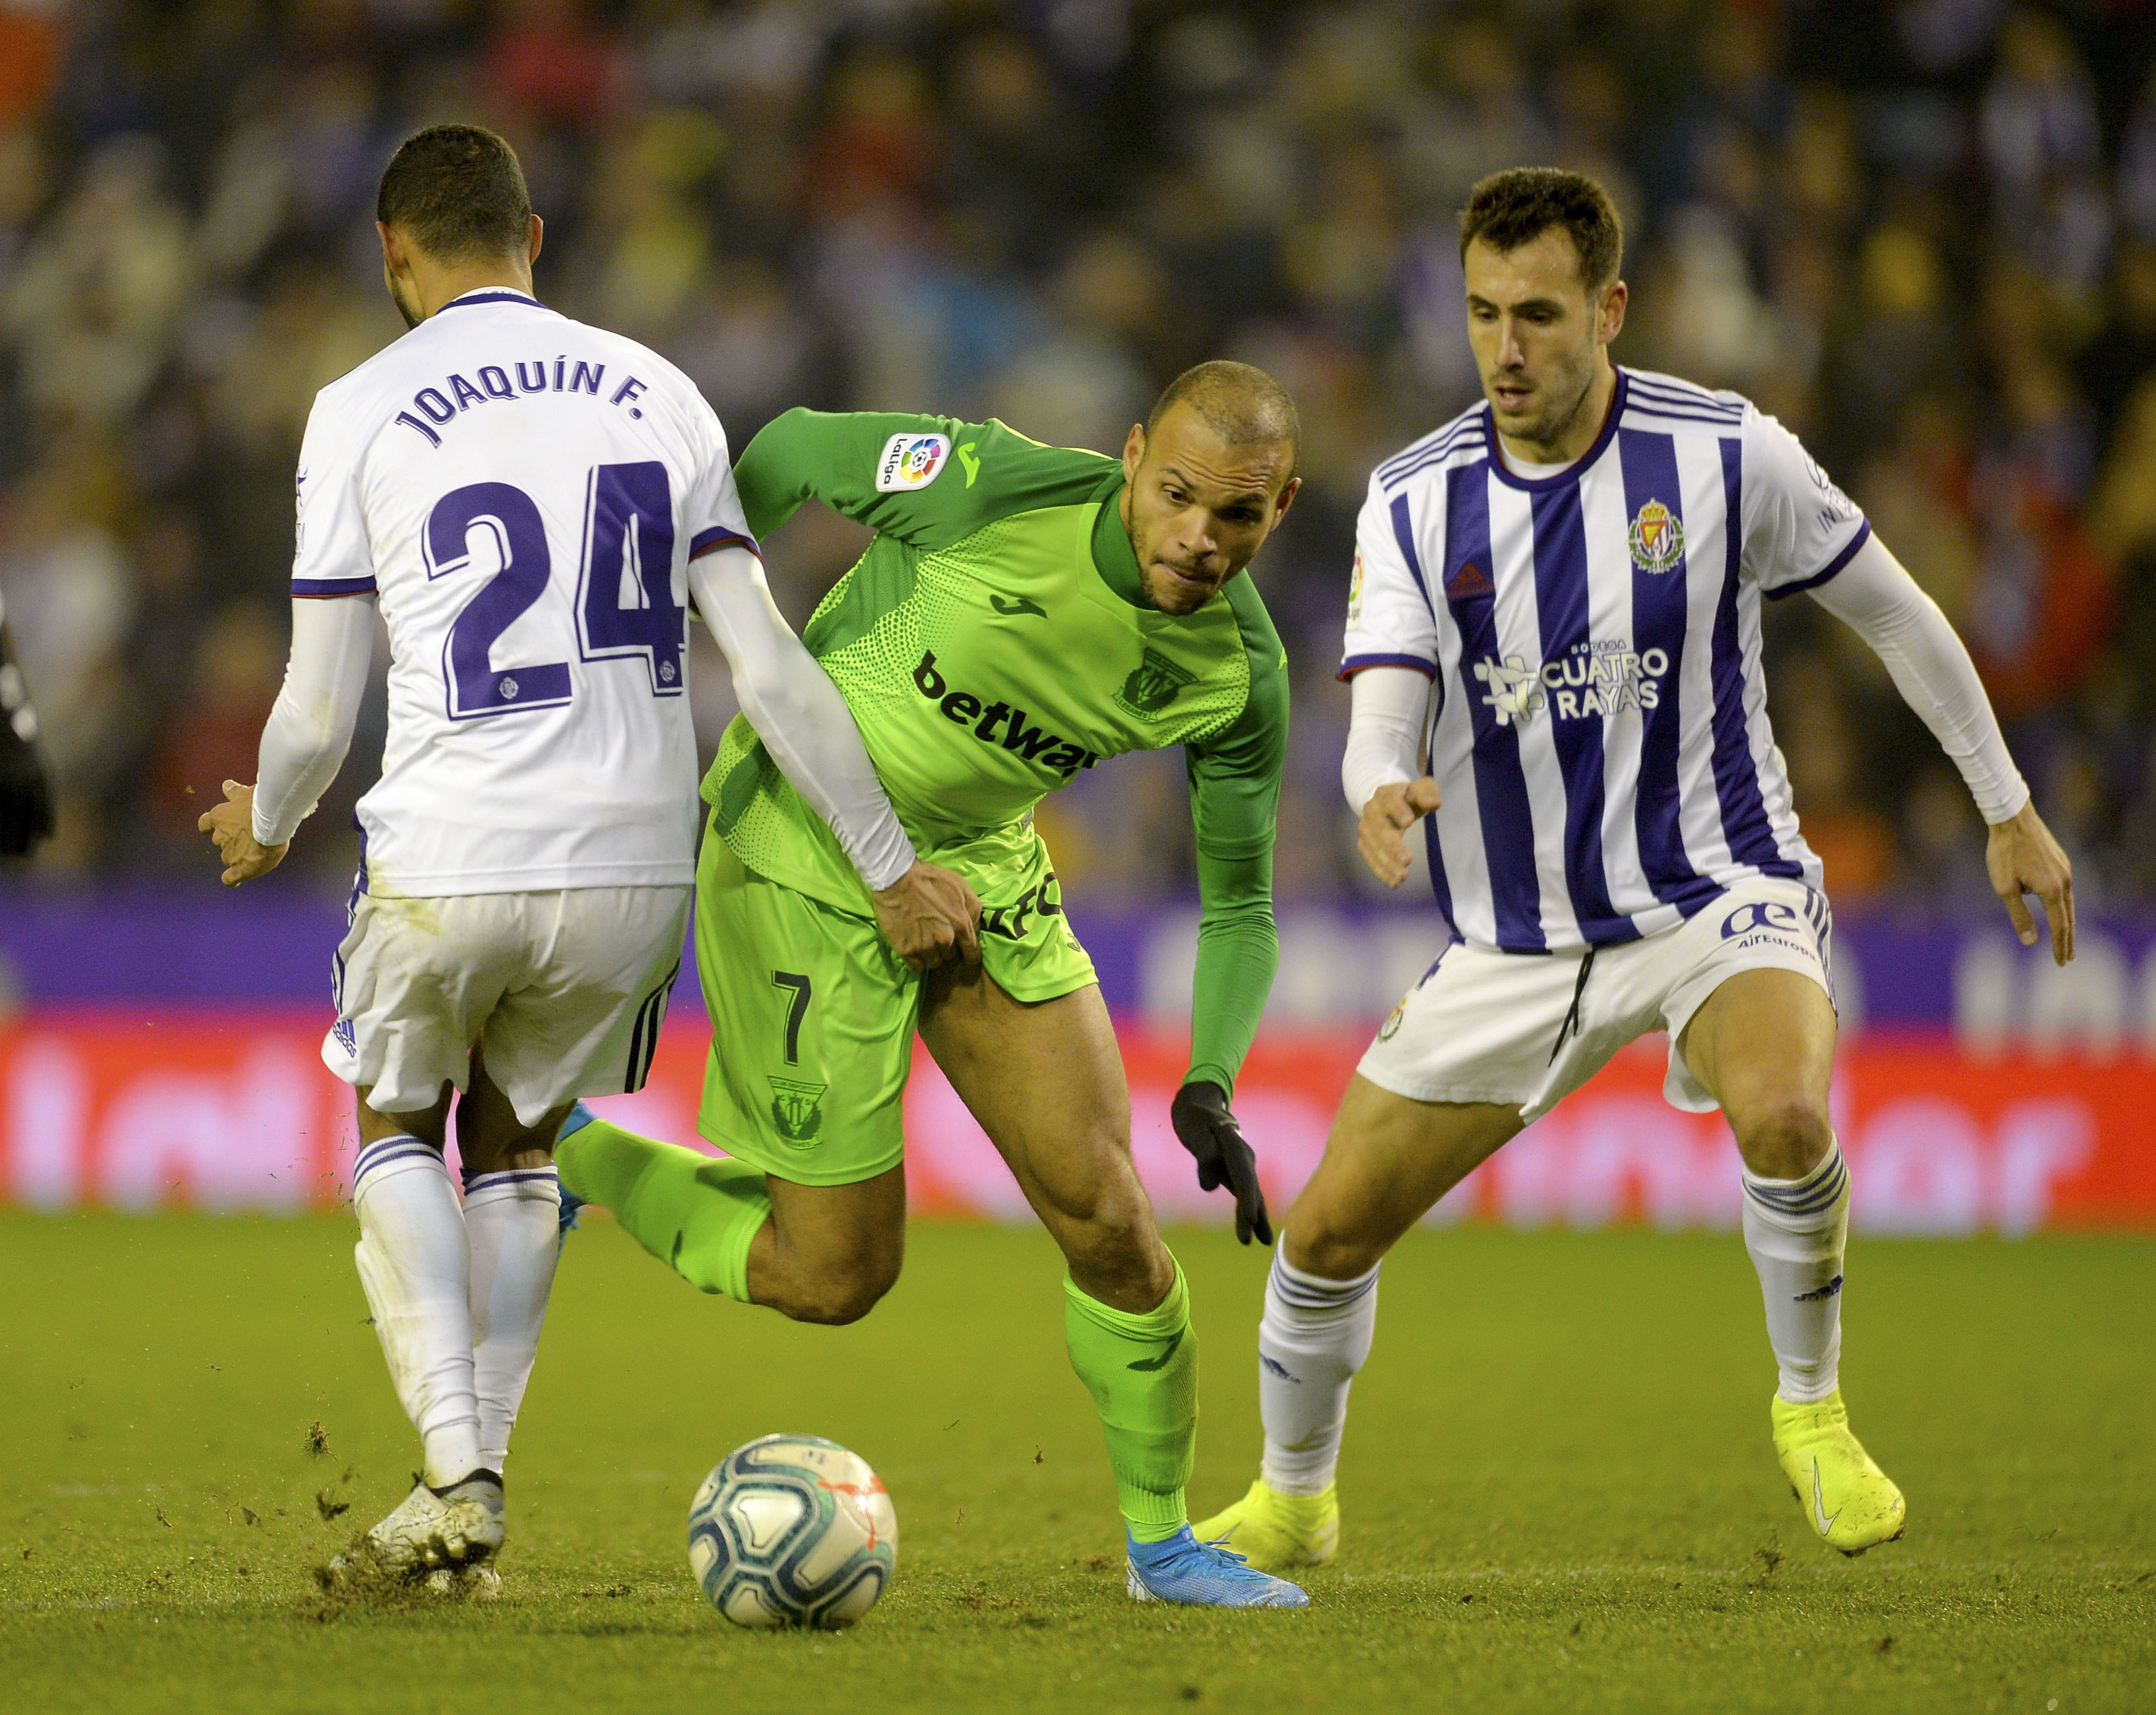 Valladolid and Leganes start 2020 with a bang